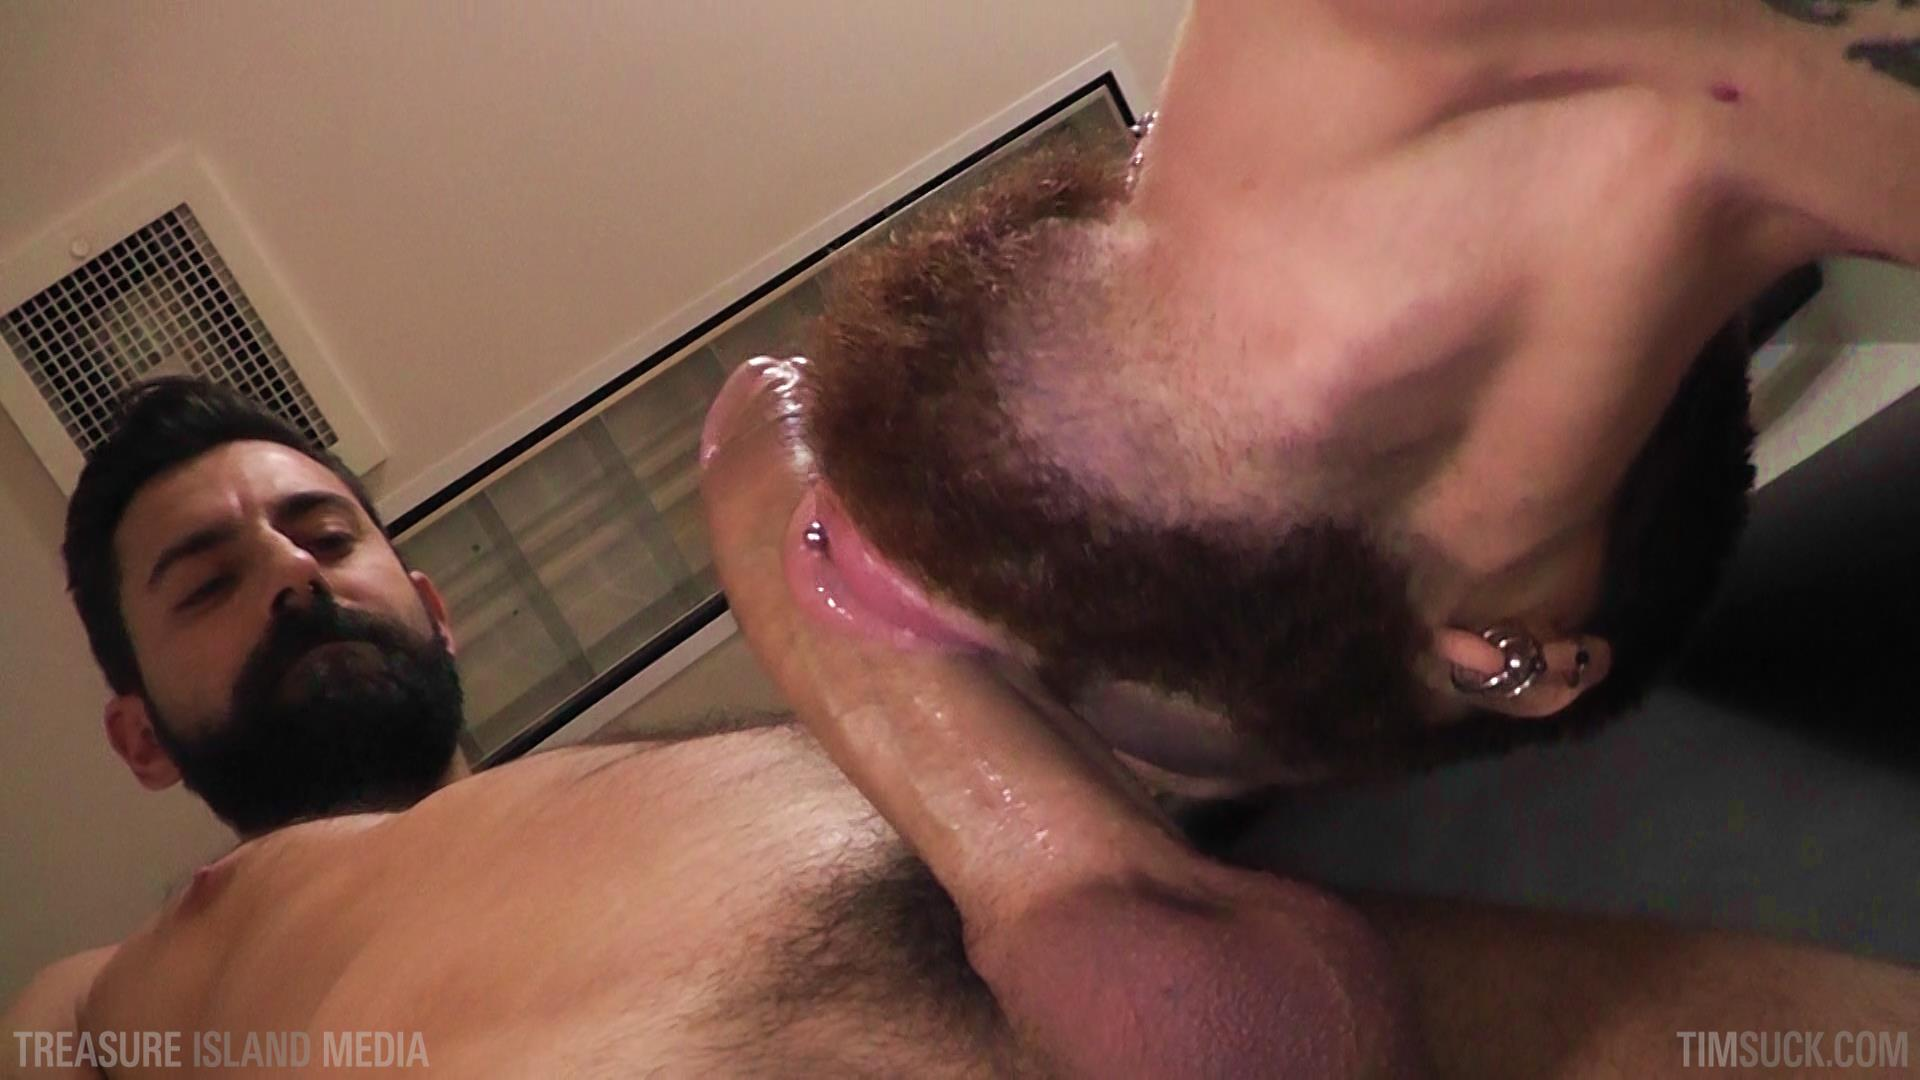 Treasure Island Media TimSuck Pete Summers and Dean Brody Sucking A Big Uncut Cock Amateur Gay Porn 20 Bearded Ginger Services A Big Uncut Cock And Eats The Cum